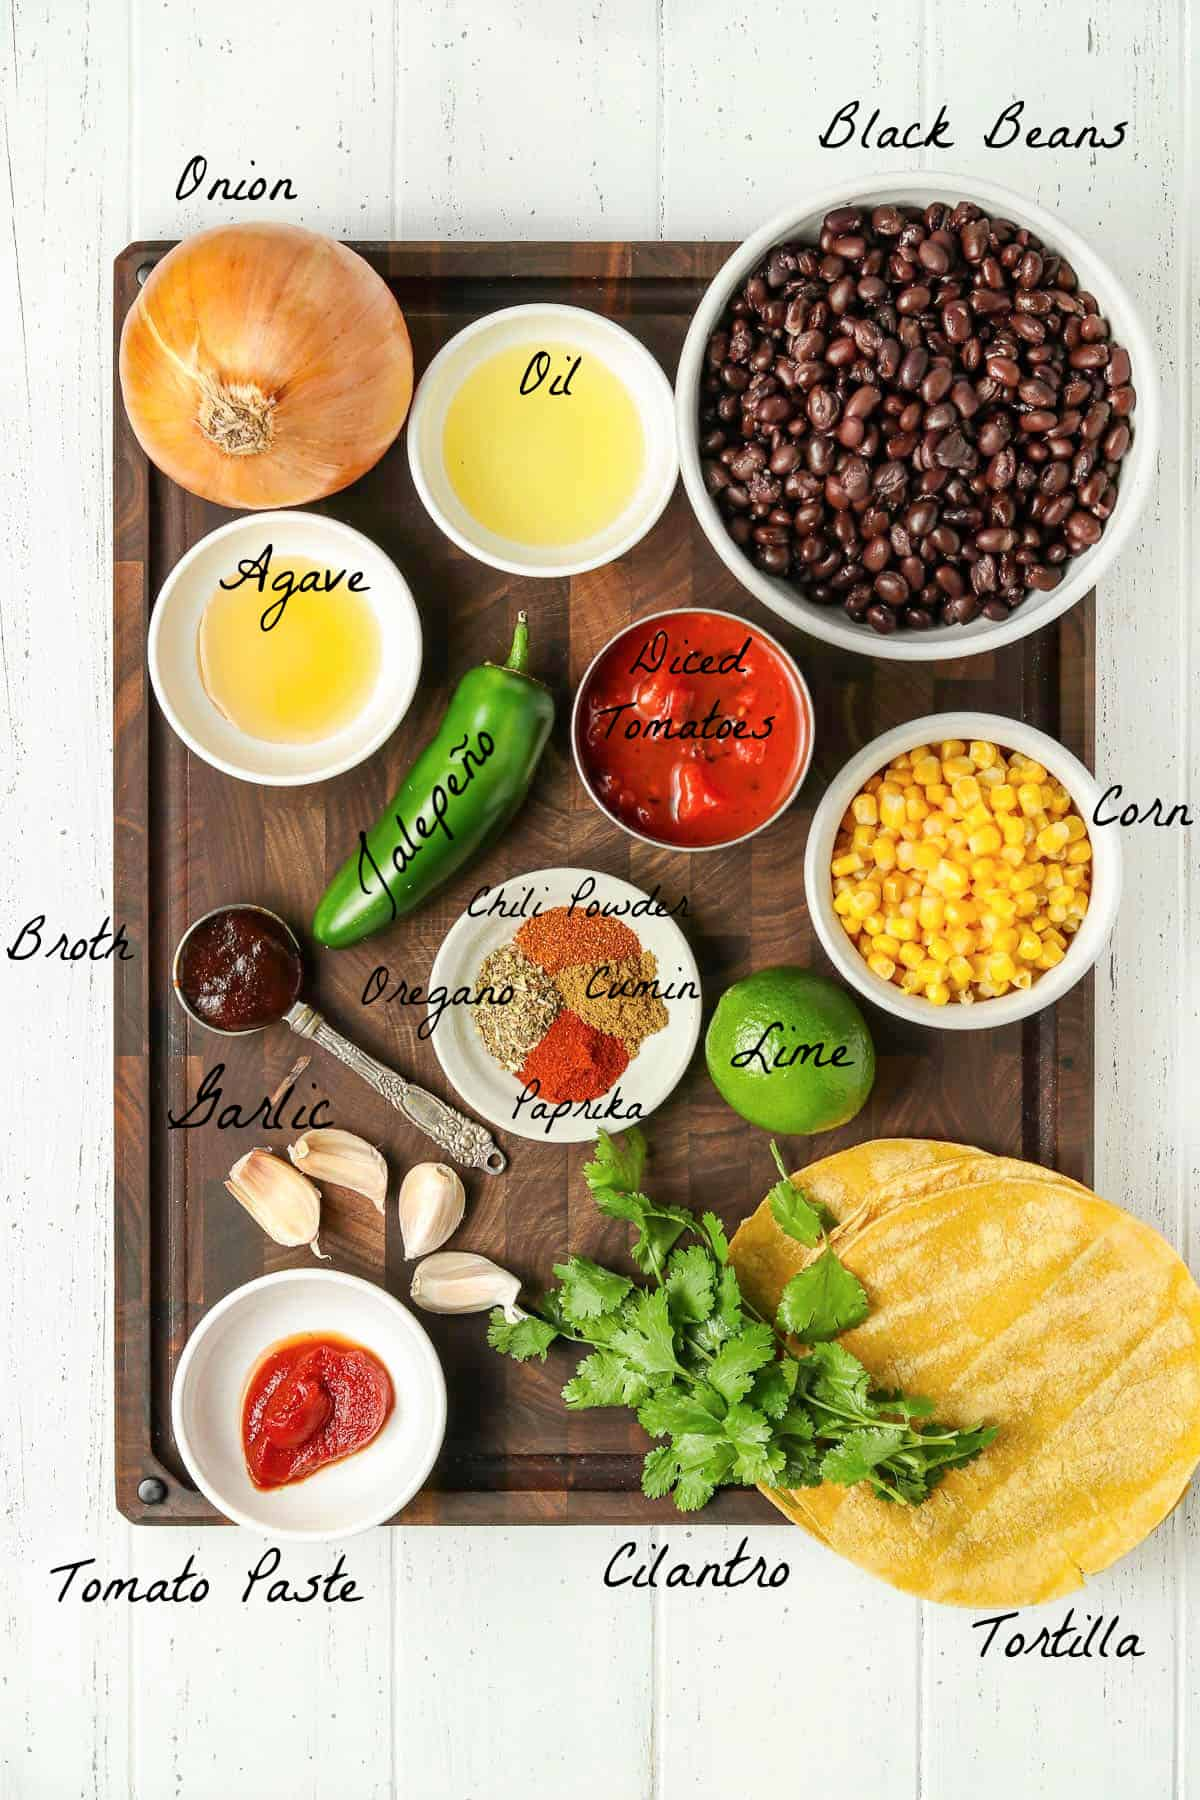 Ingredients to make the recipes on a wood cutting board.